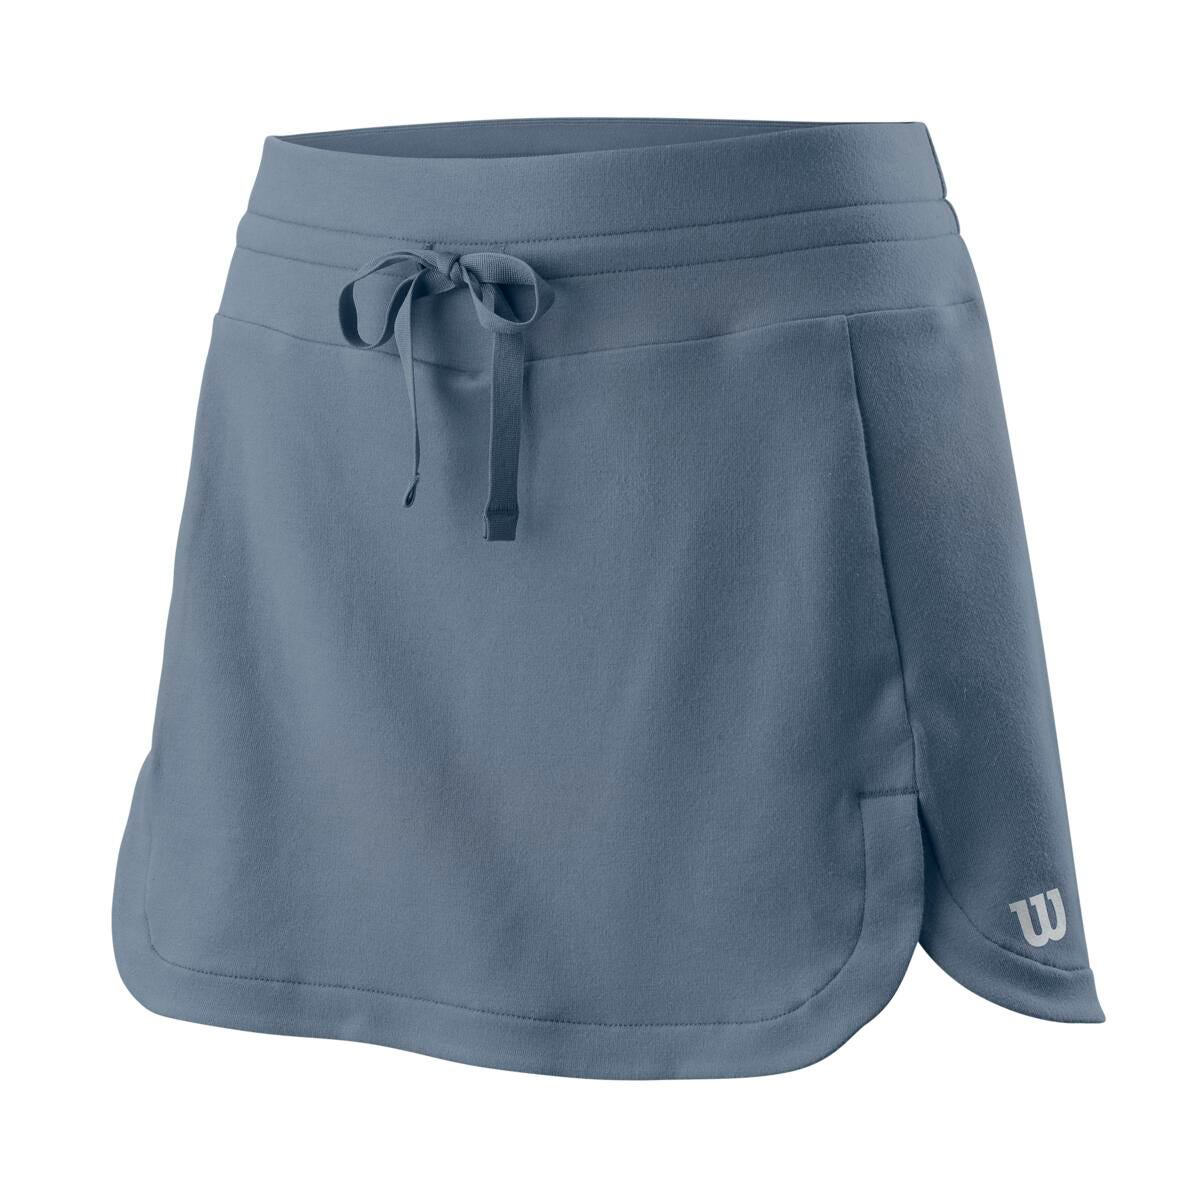 Women's Competition Tennis Skirt